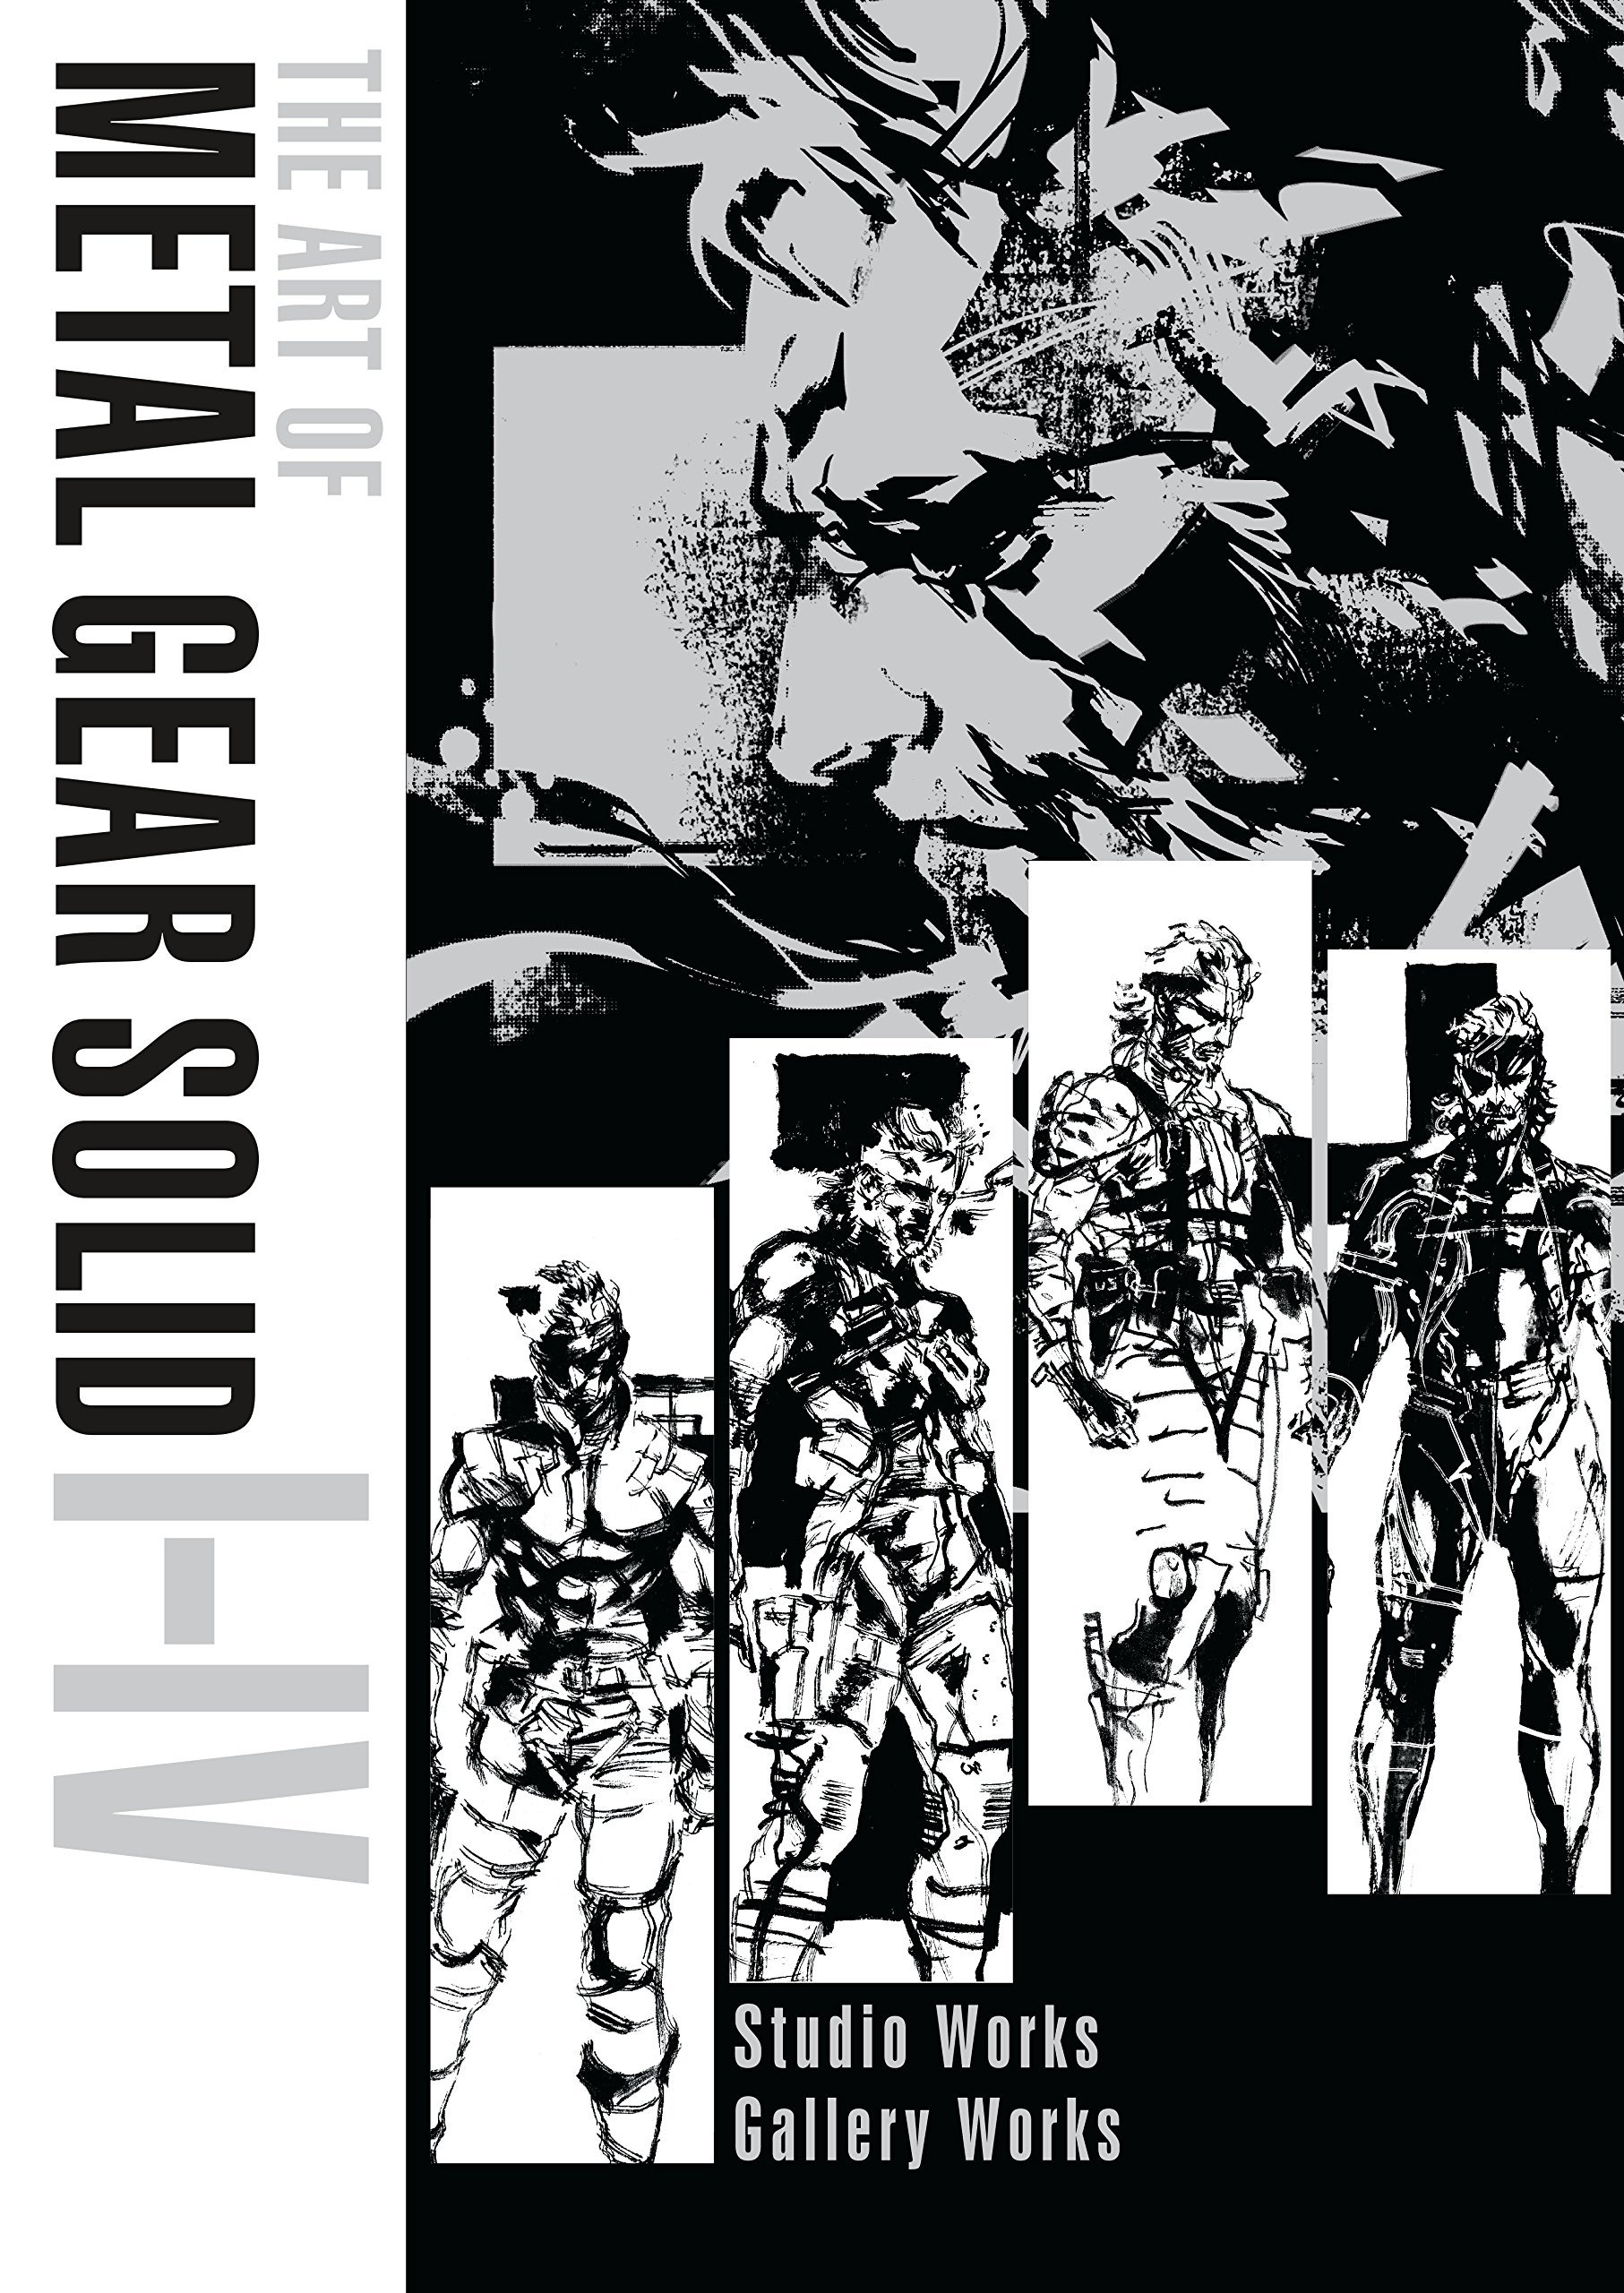 Metal Gear - The Art of Metal Gear Solid I-IV